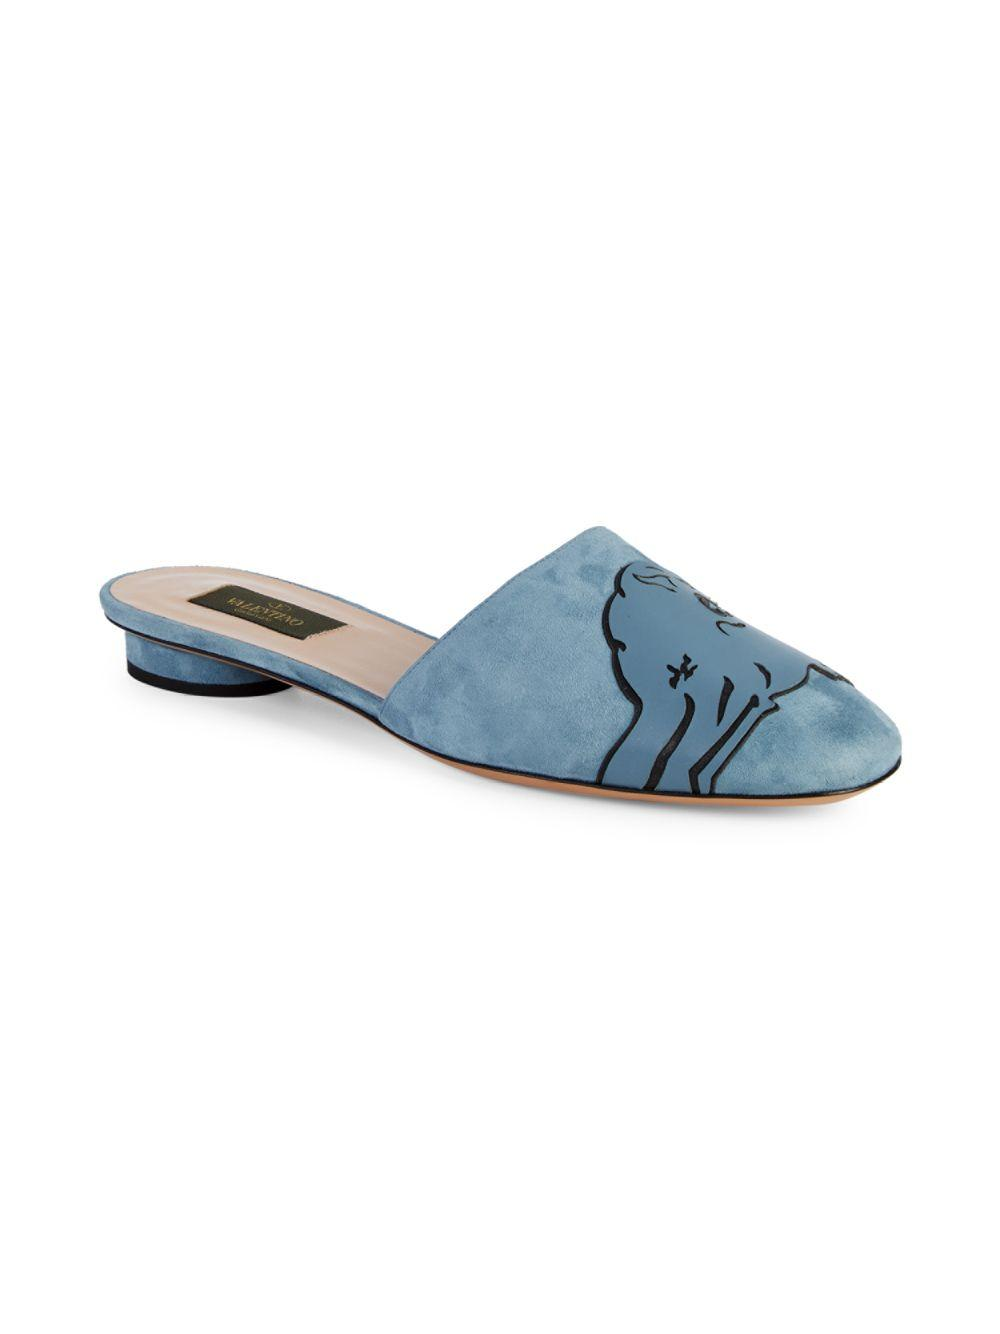 7bf4fab352f Valentino Animal-print Leather Mules in Blue - Lyst